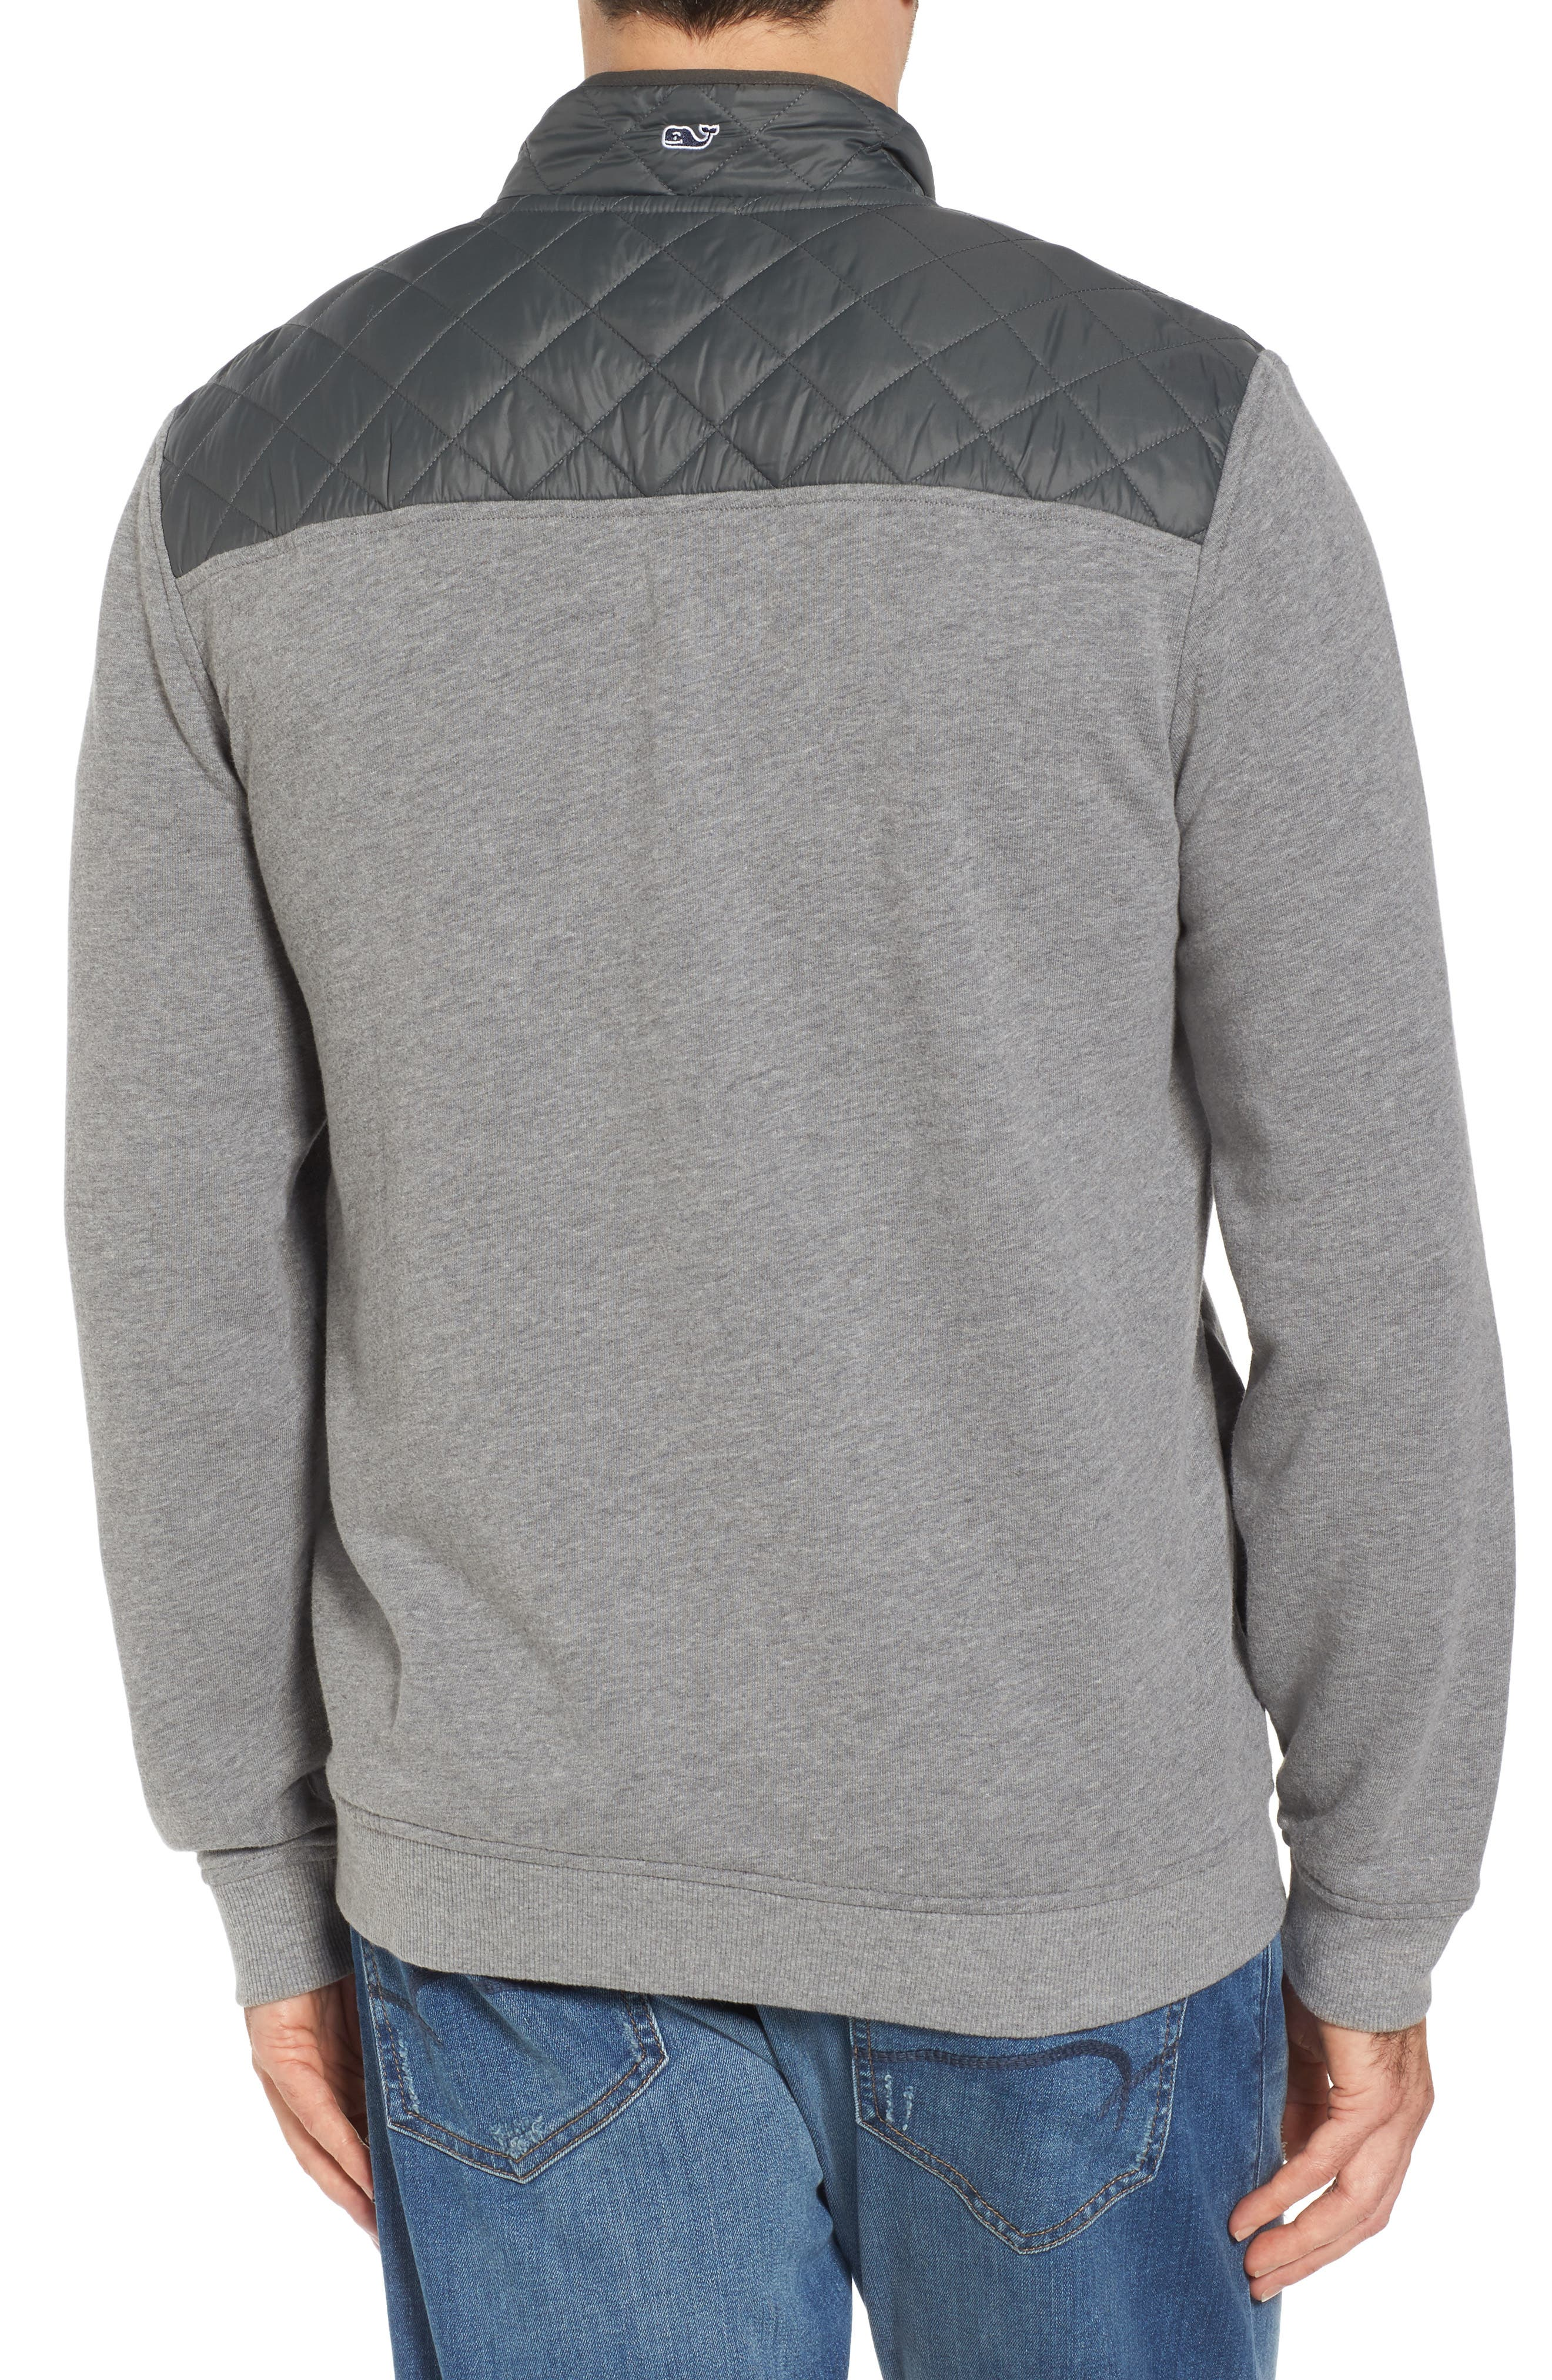 Shep Performance Quilted Yoke Quarter Zip Pullover,                             Alternate thumbnail 2, color,                             030